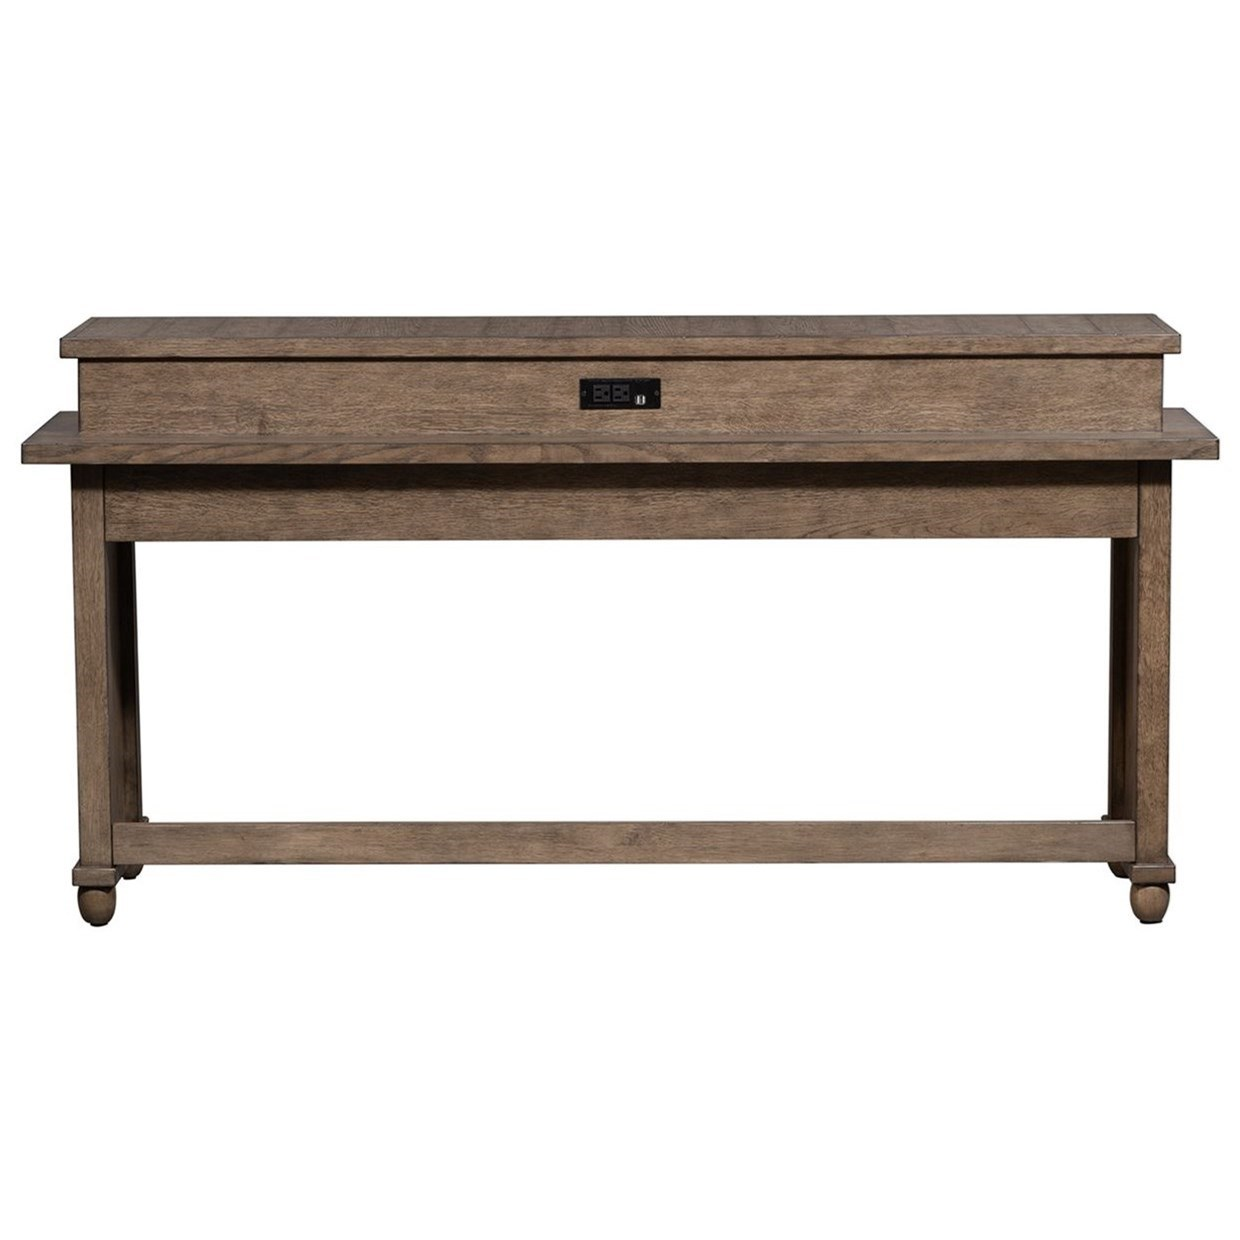 Harvest Home Console Bar Table by Libby at Walker's Furniture